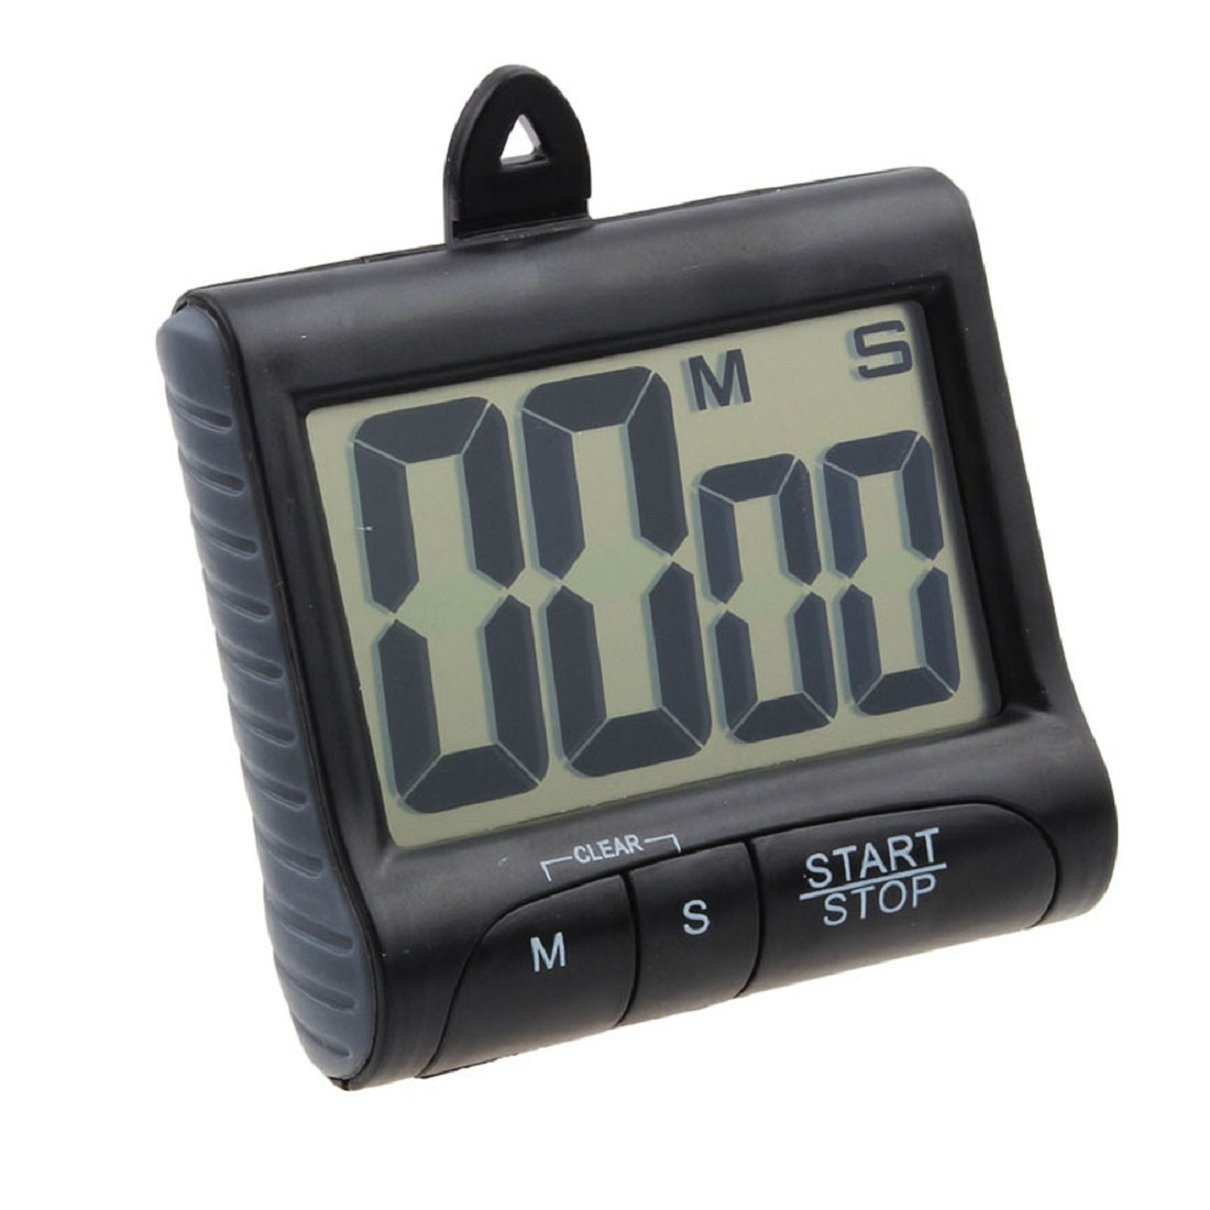 Kitchen Timer and Digital Countdown Alarm Clock with Magnet